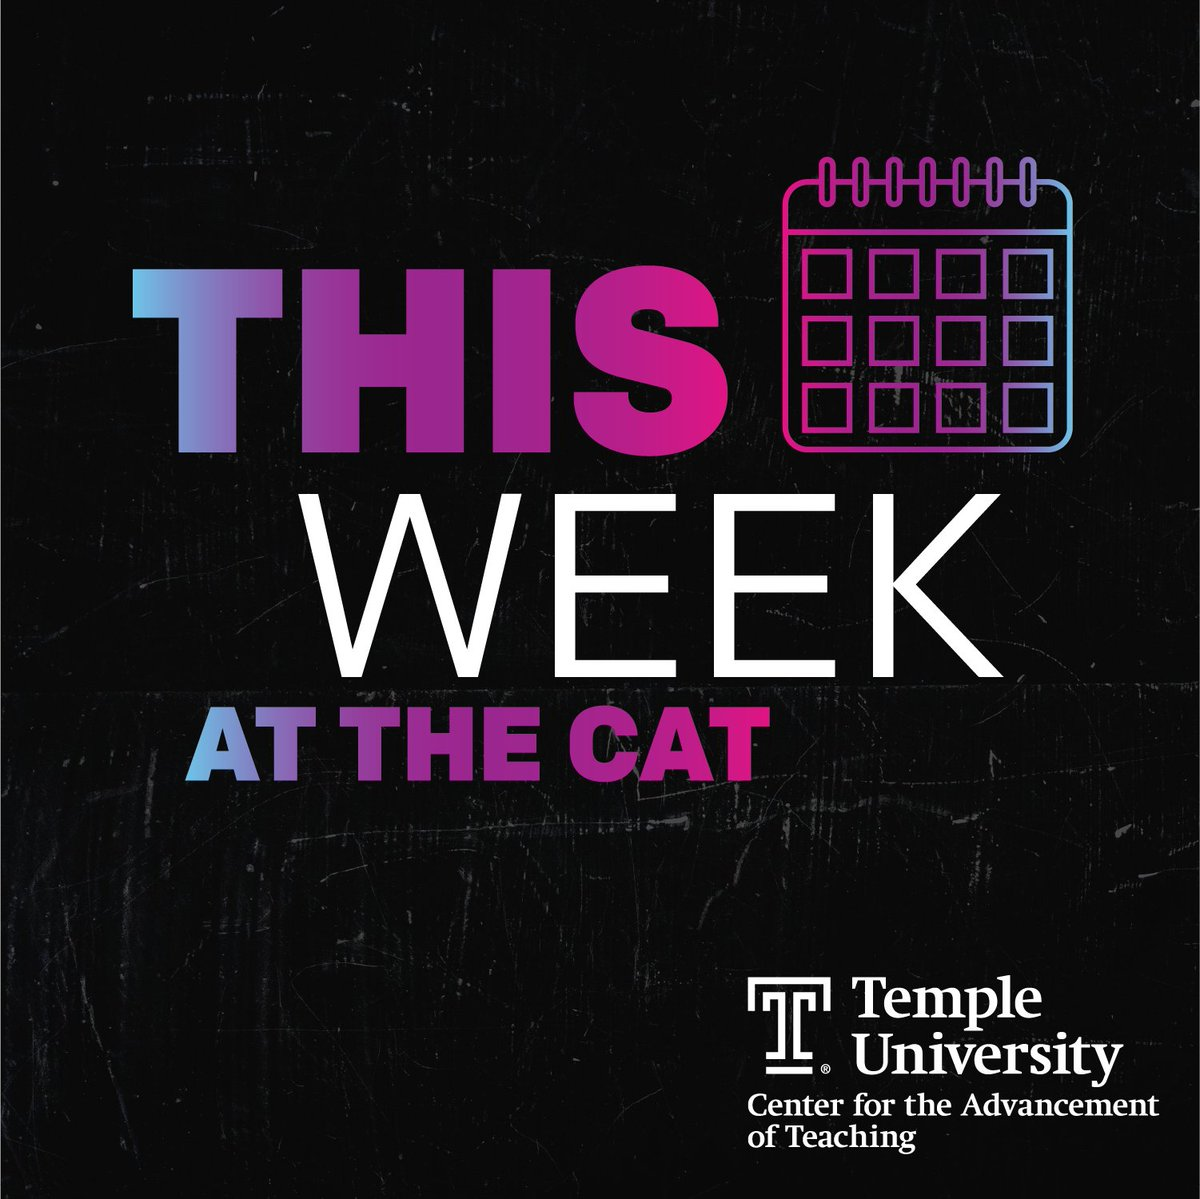 The culmination of conversations between @TempleLibraries and @TempleUCAT after an #openpedagogy workshop at @TempleUniv by @actualham . The power of collaboration! Let's encourage more open pedagogy assignments for our students @TUFacultyHerald https://t.co/vUuYQJgbeb